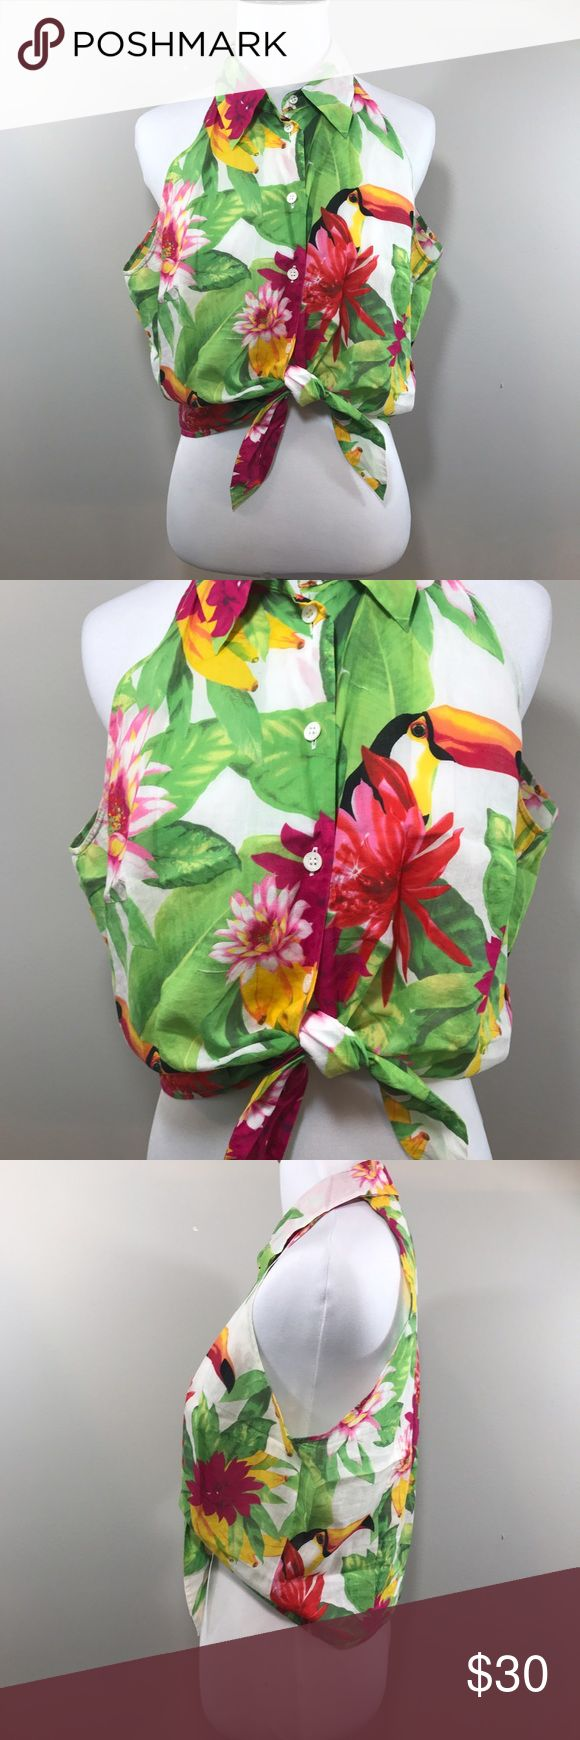 Vintage 90s Escada Sport Tropical Toucan Crop Top In excellent vintage condition. Button up tie crop top. Size 42-- Italian sizing. Fits like a M in US. Shown on a S mannequin size 2/4. Escada Tops Crop Tops